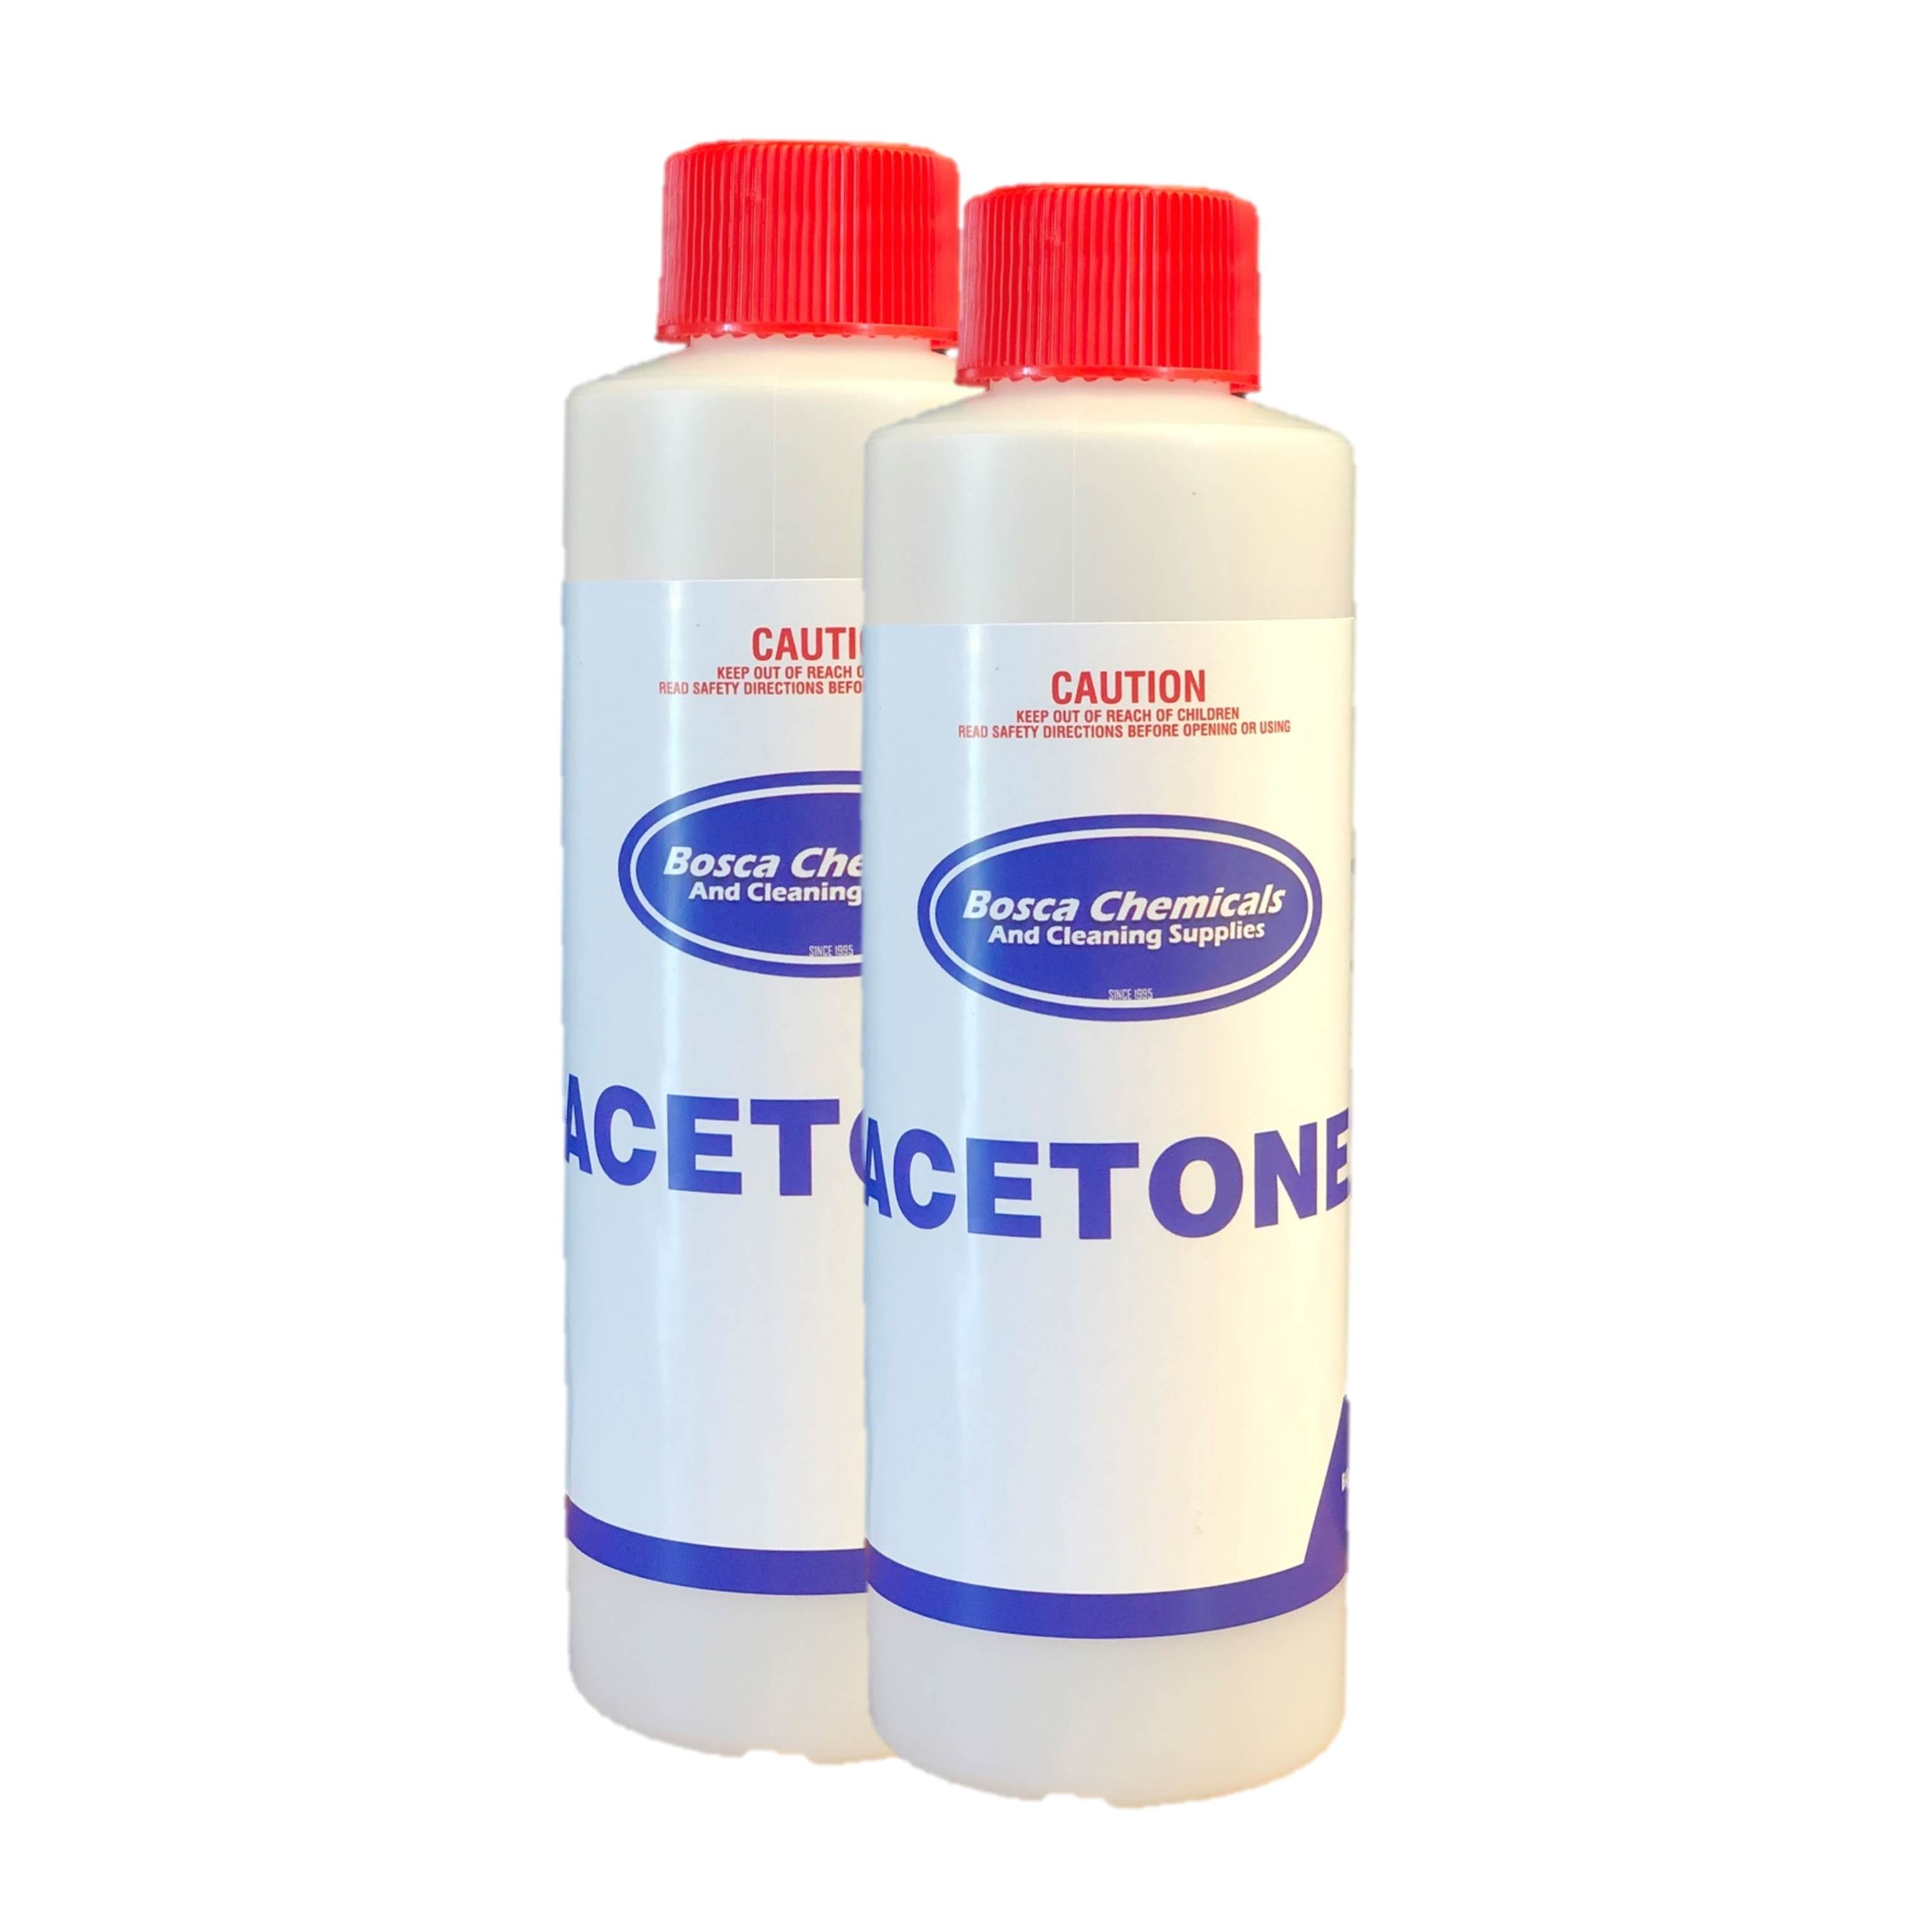 100% Pure Acetone 250ml - Twin Pack of Nail Polish Remover - Free & Fast Shipping